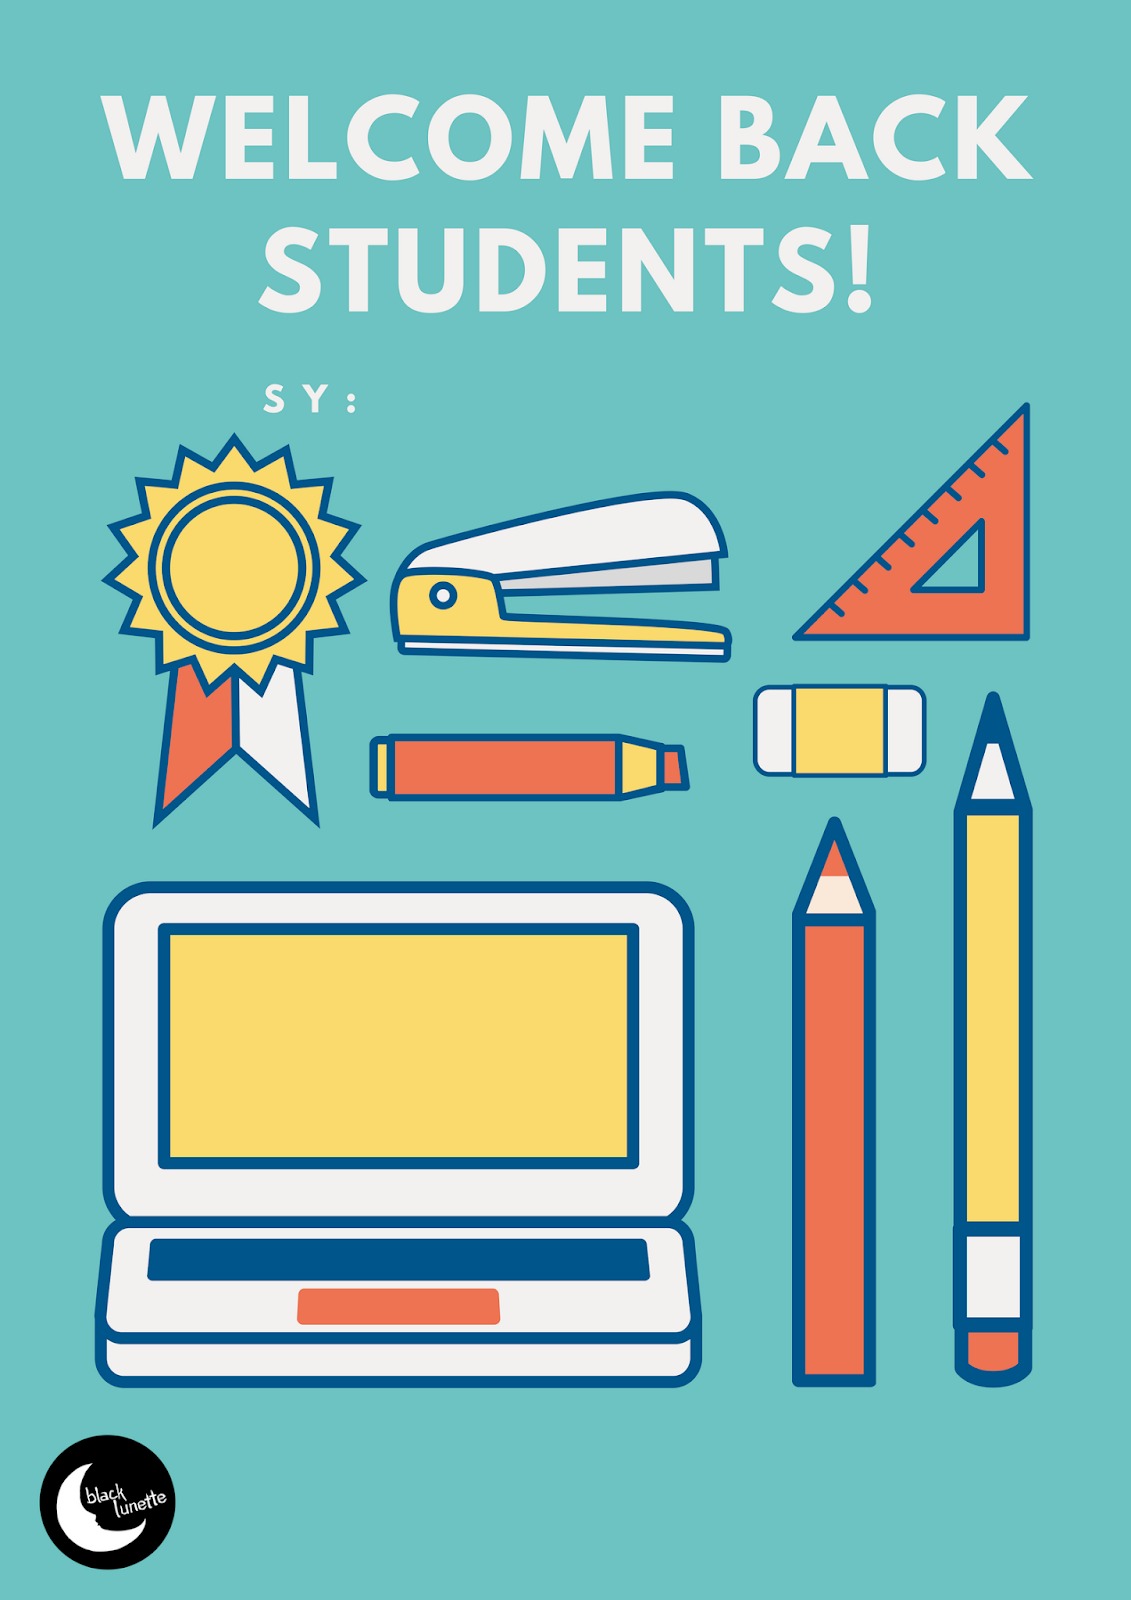 School Rules And Announcements Posters Templates Free